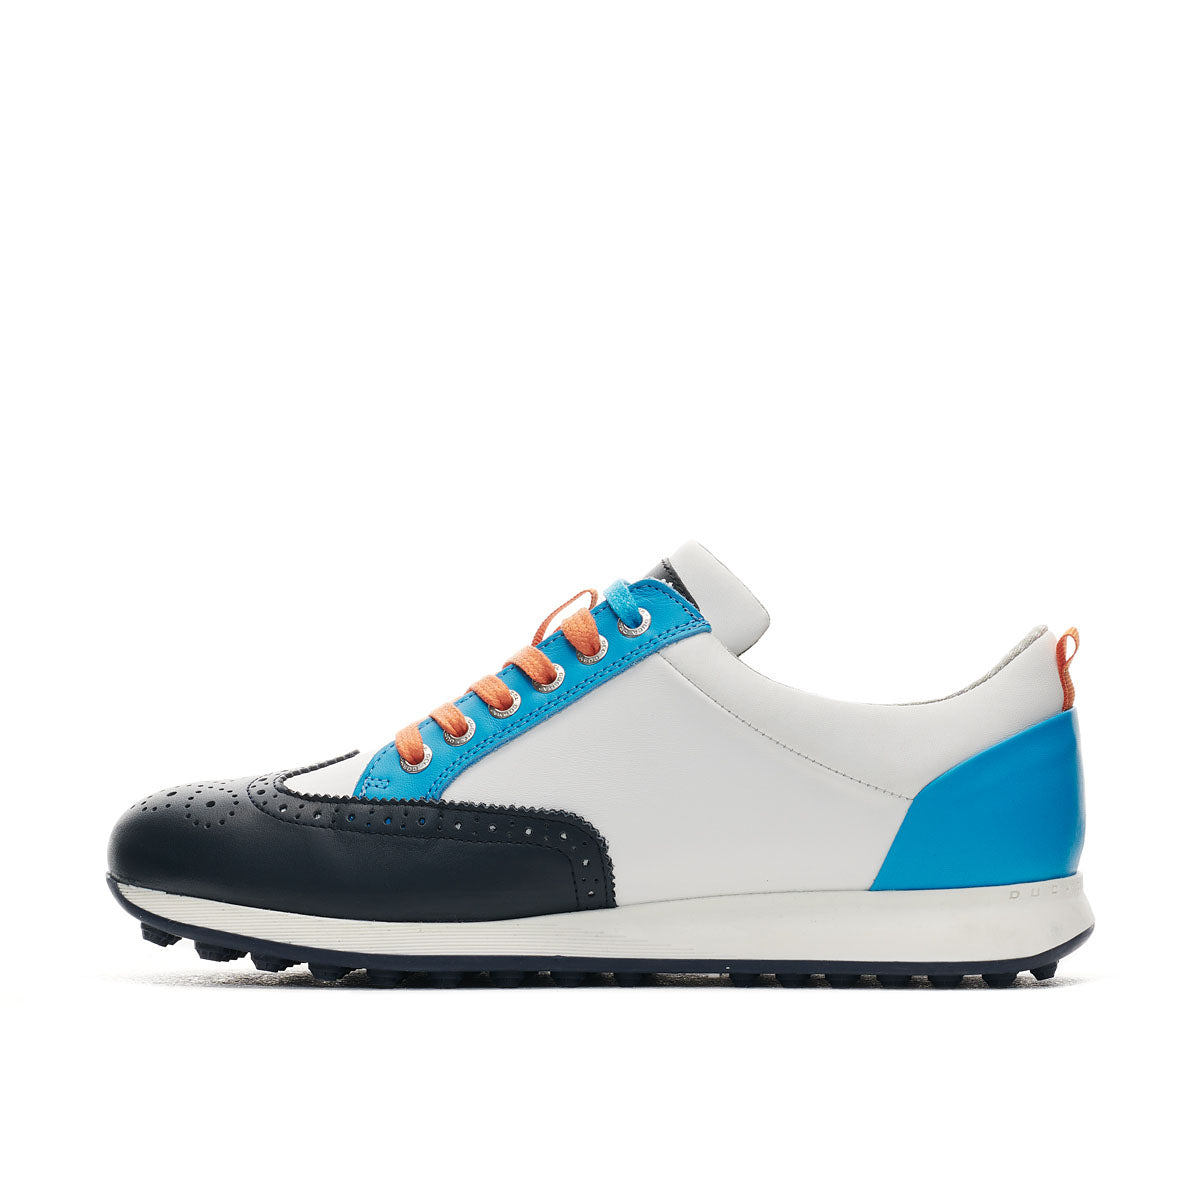 Men's KLM Open Camelot White/Blue Golf Shoe